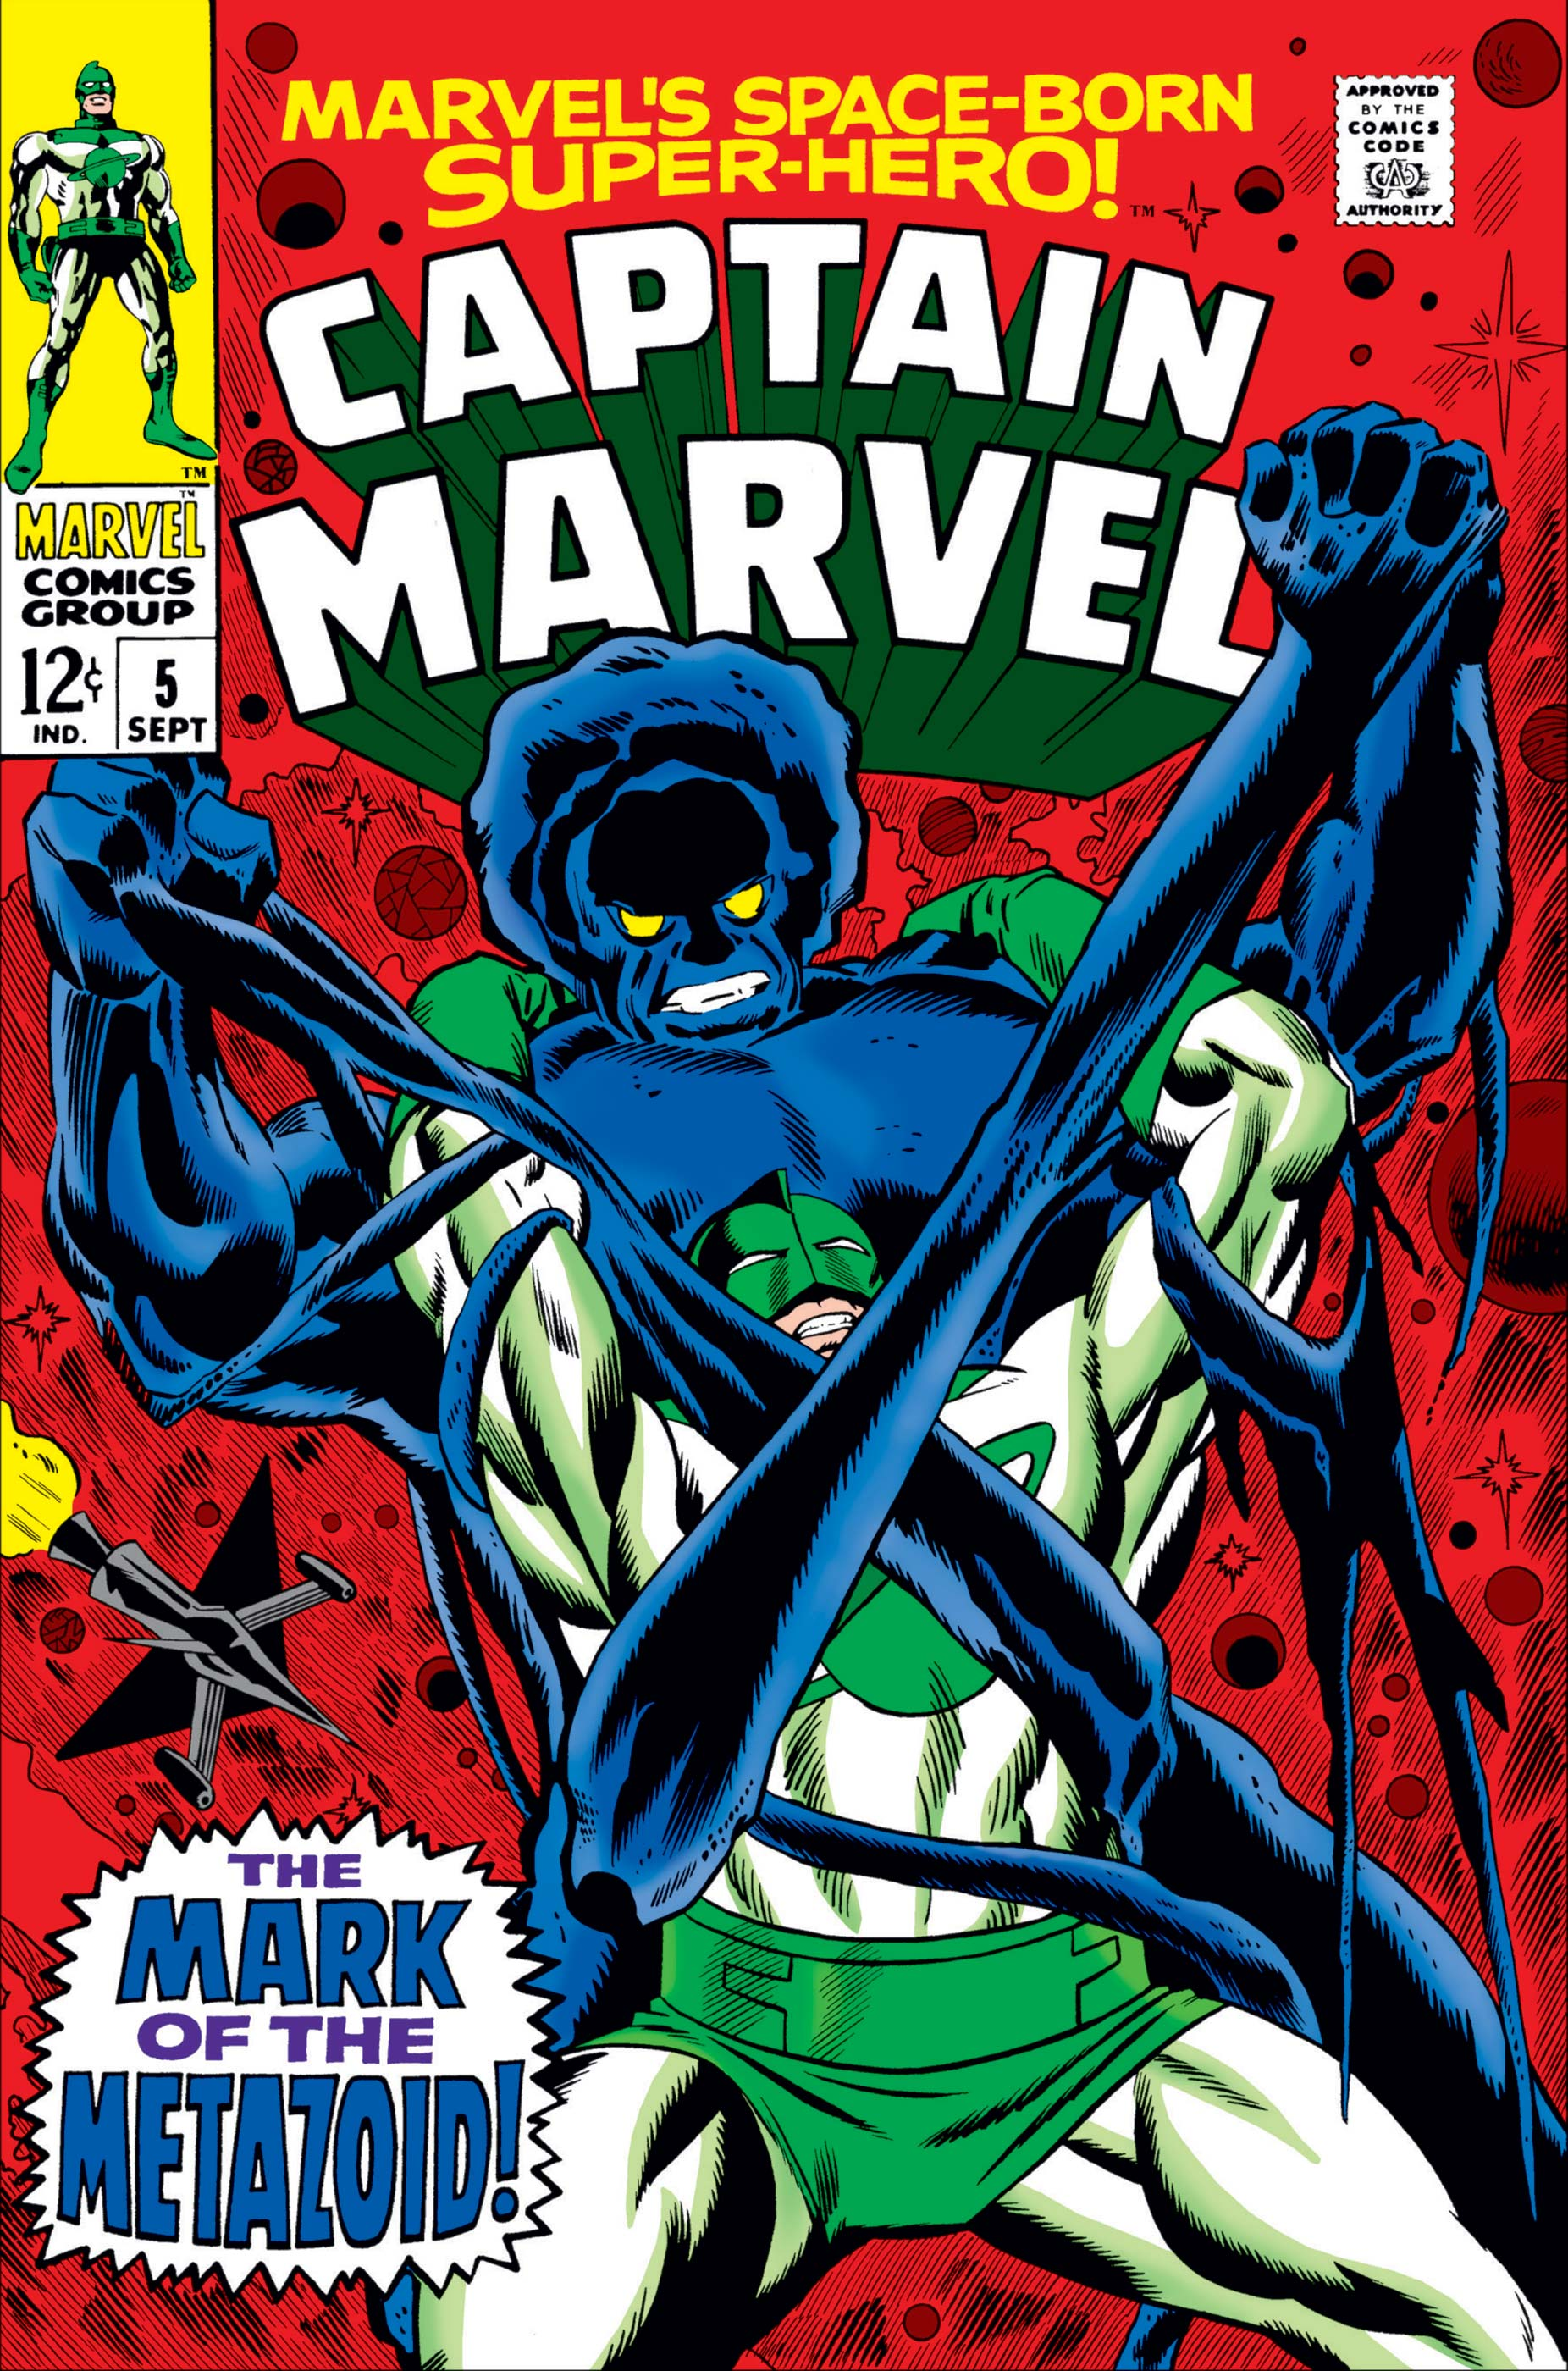 Captain Marvel (1968) #5